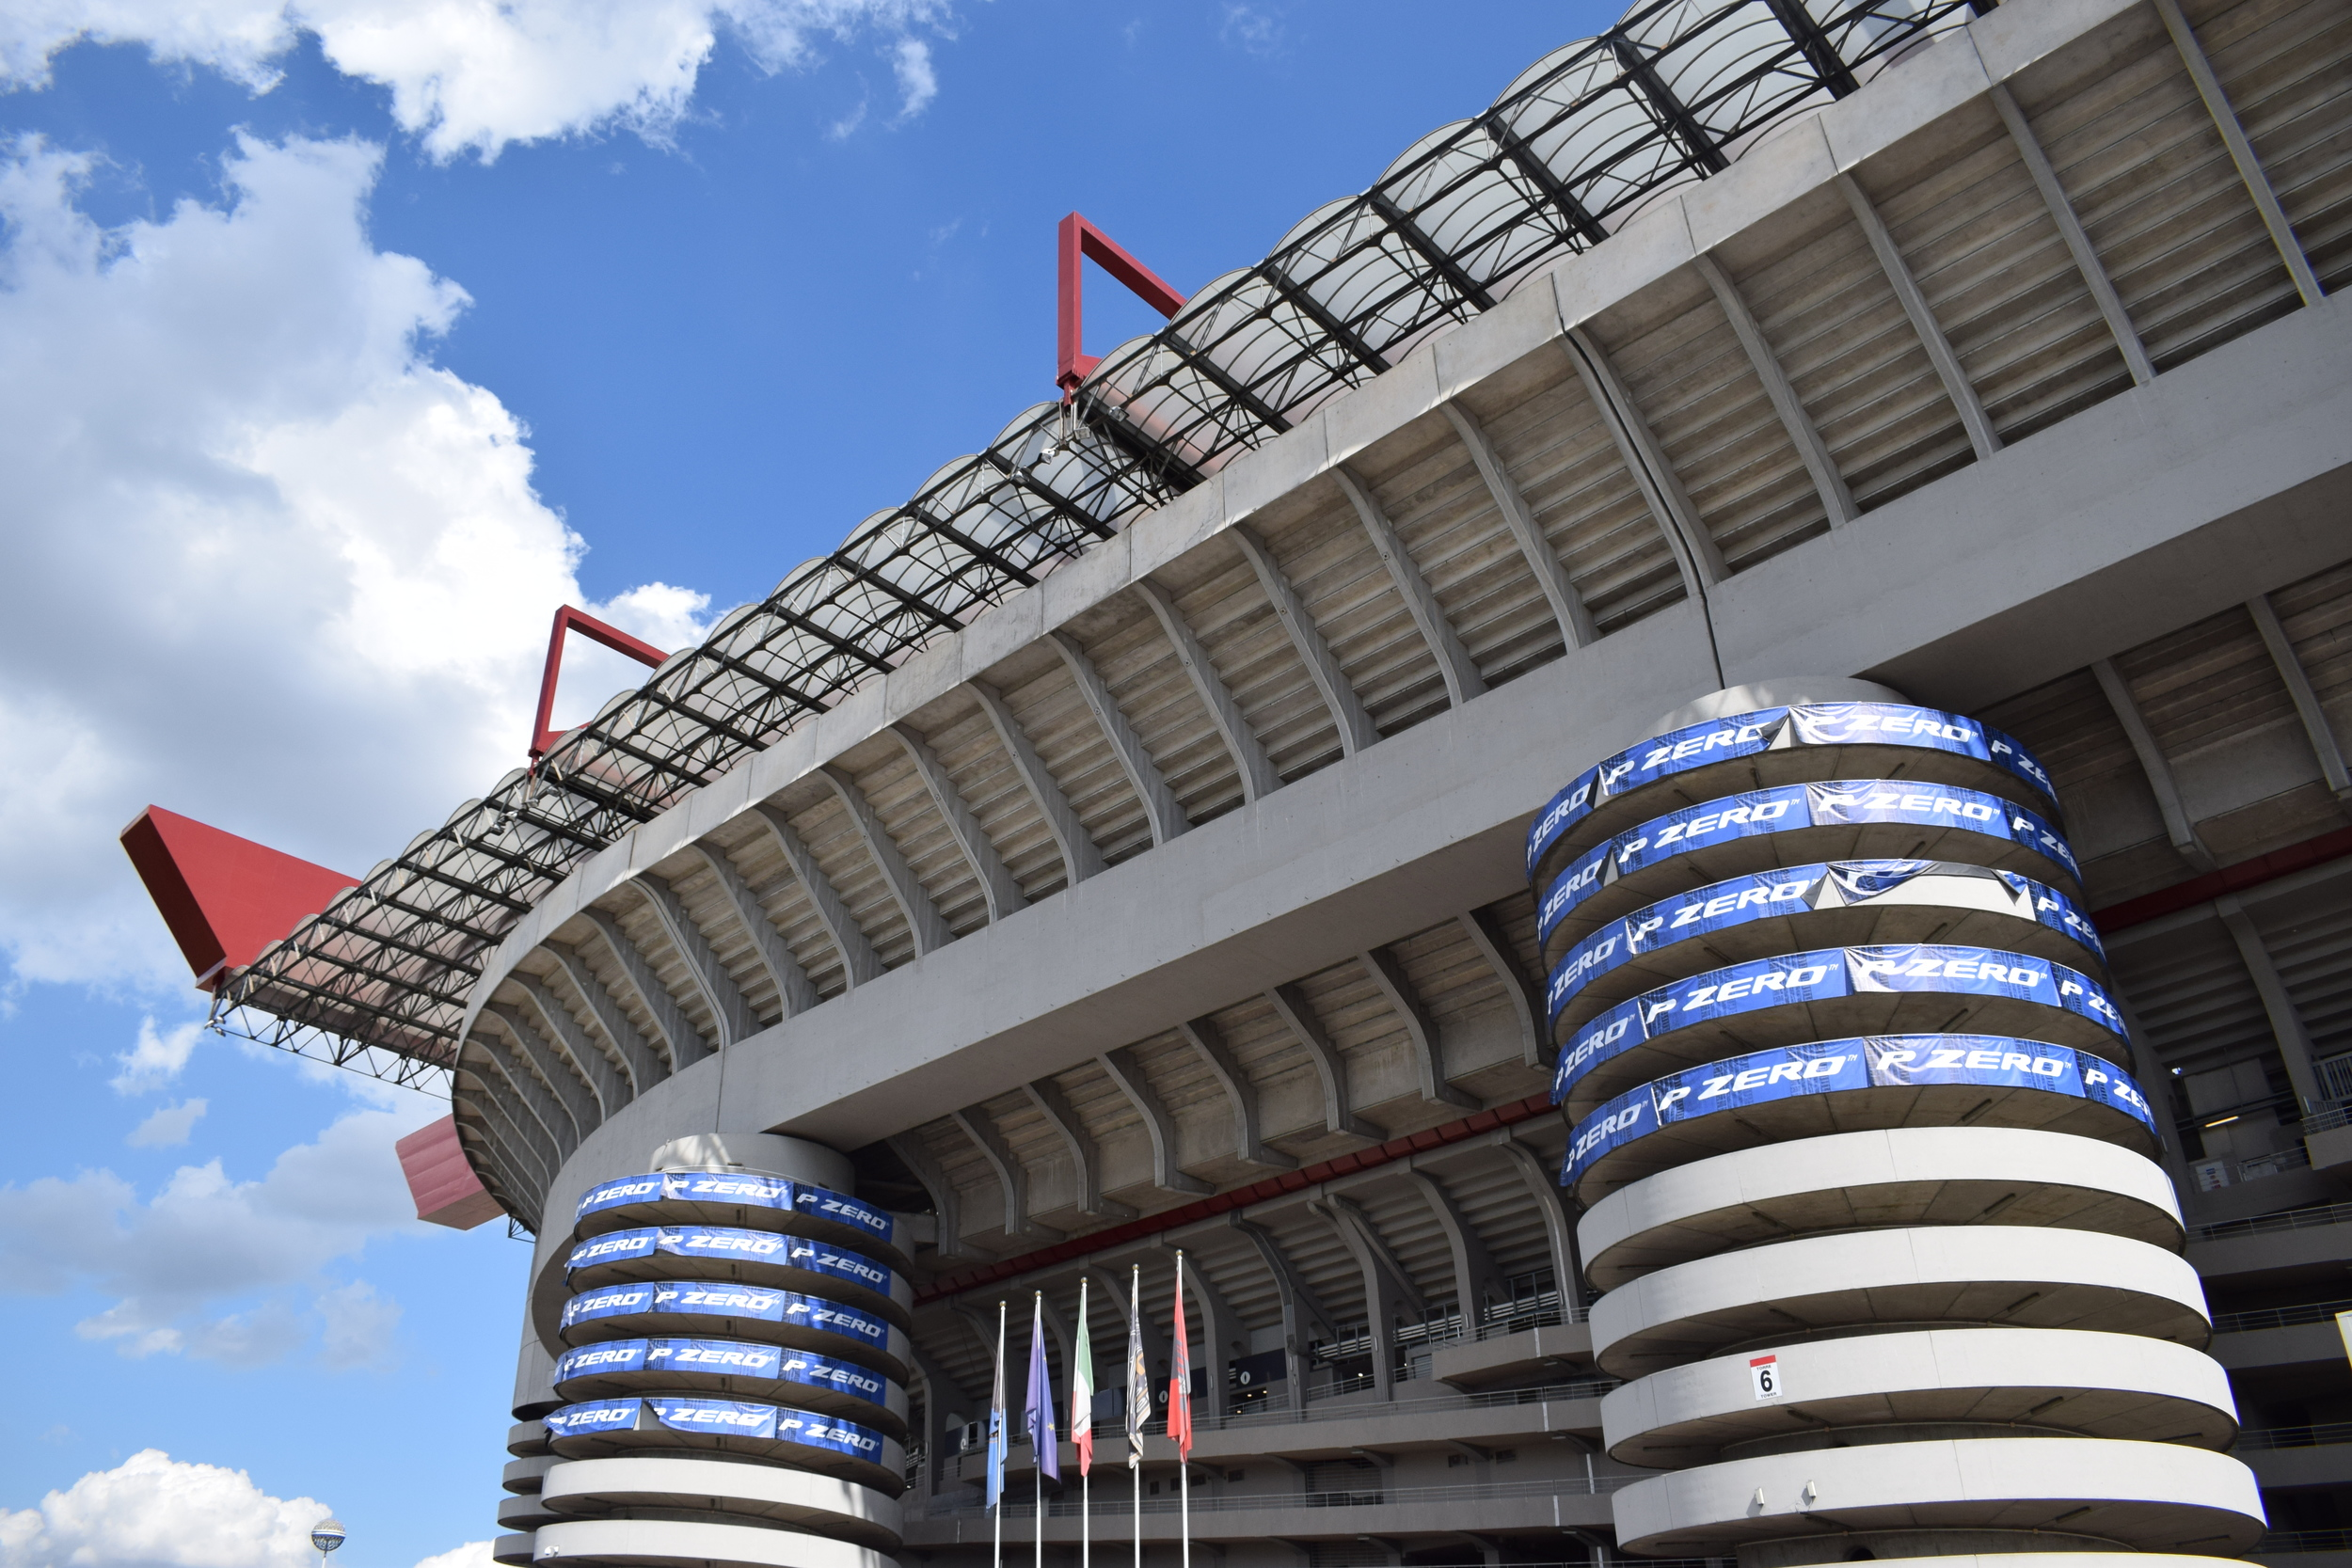 No trip to Milan would be complete without visiting the San Siro.